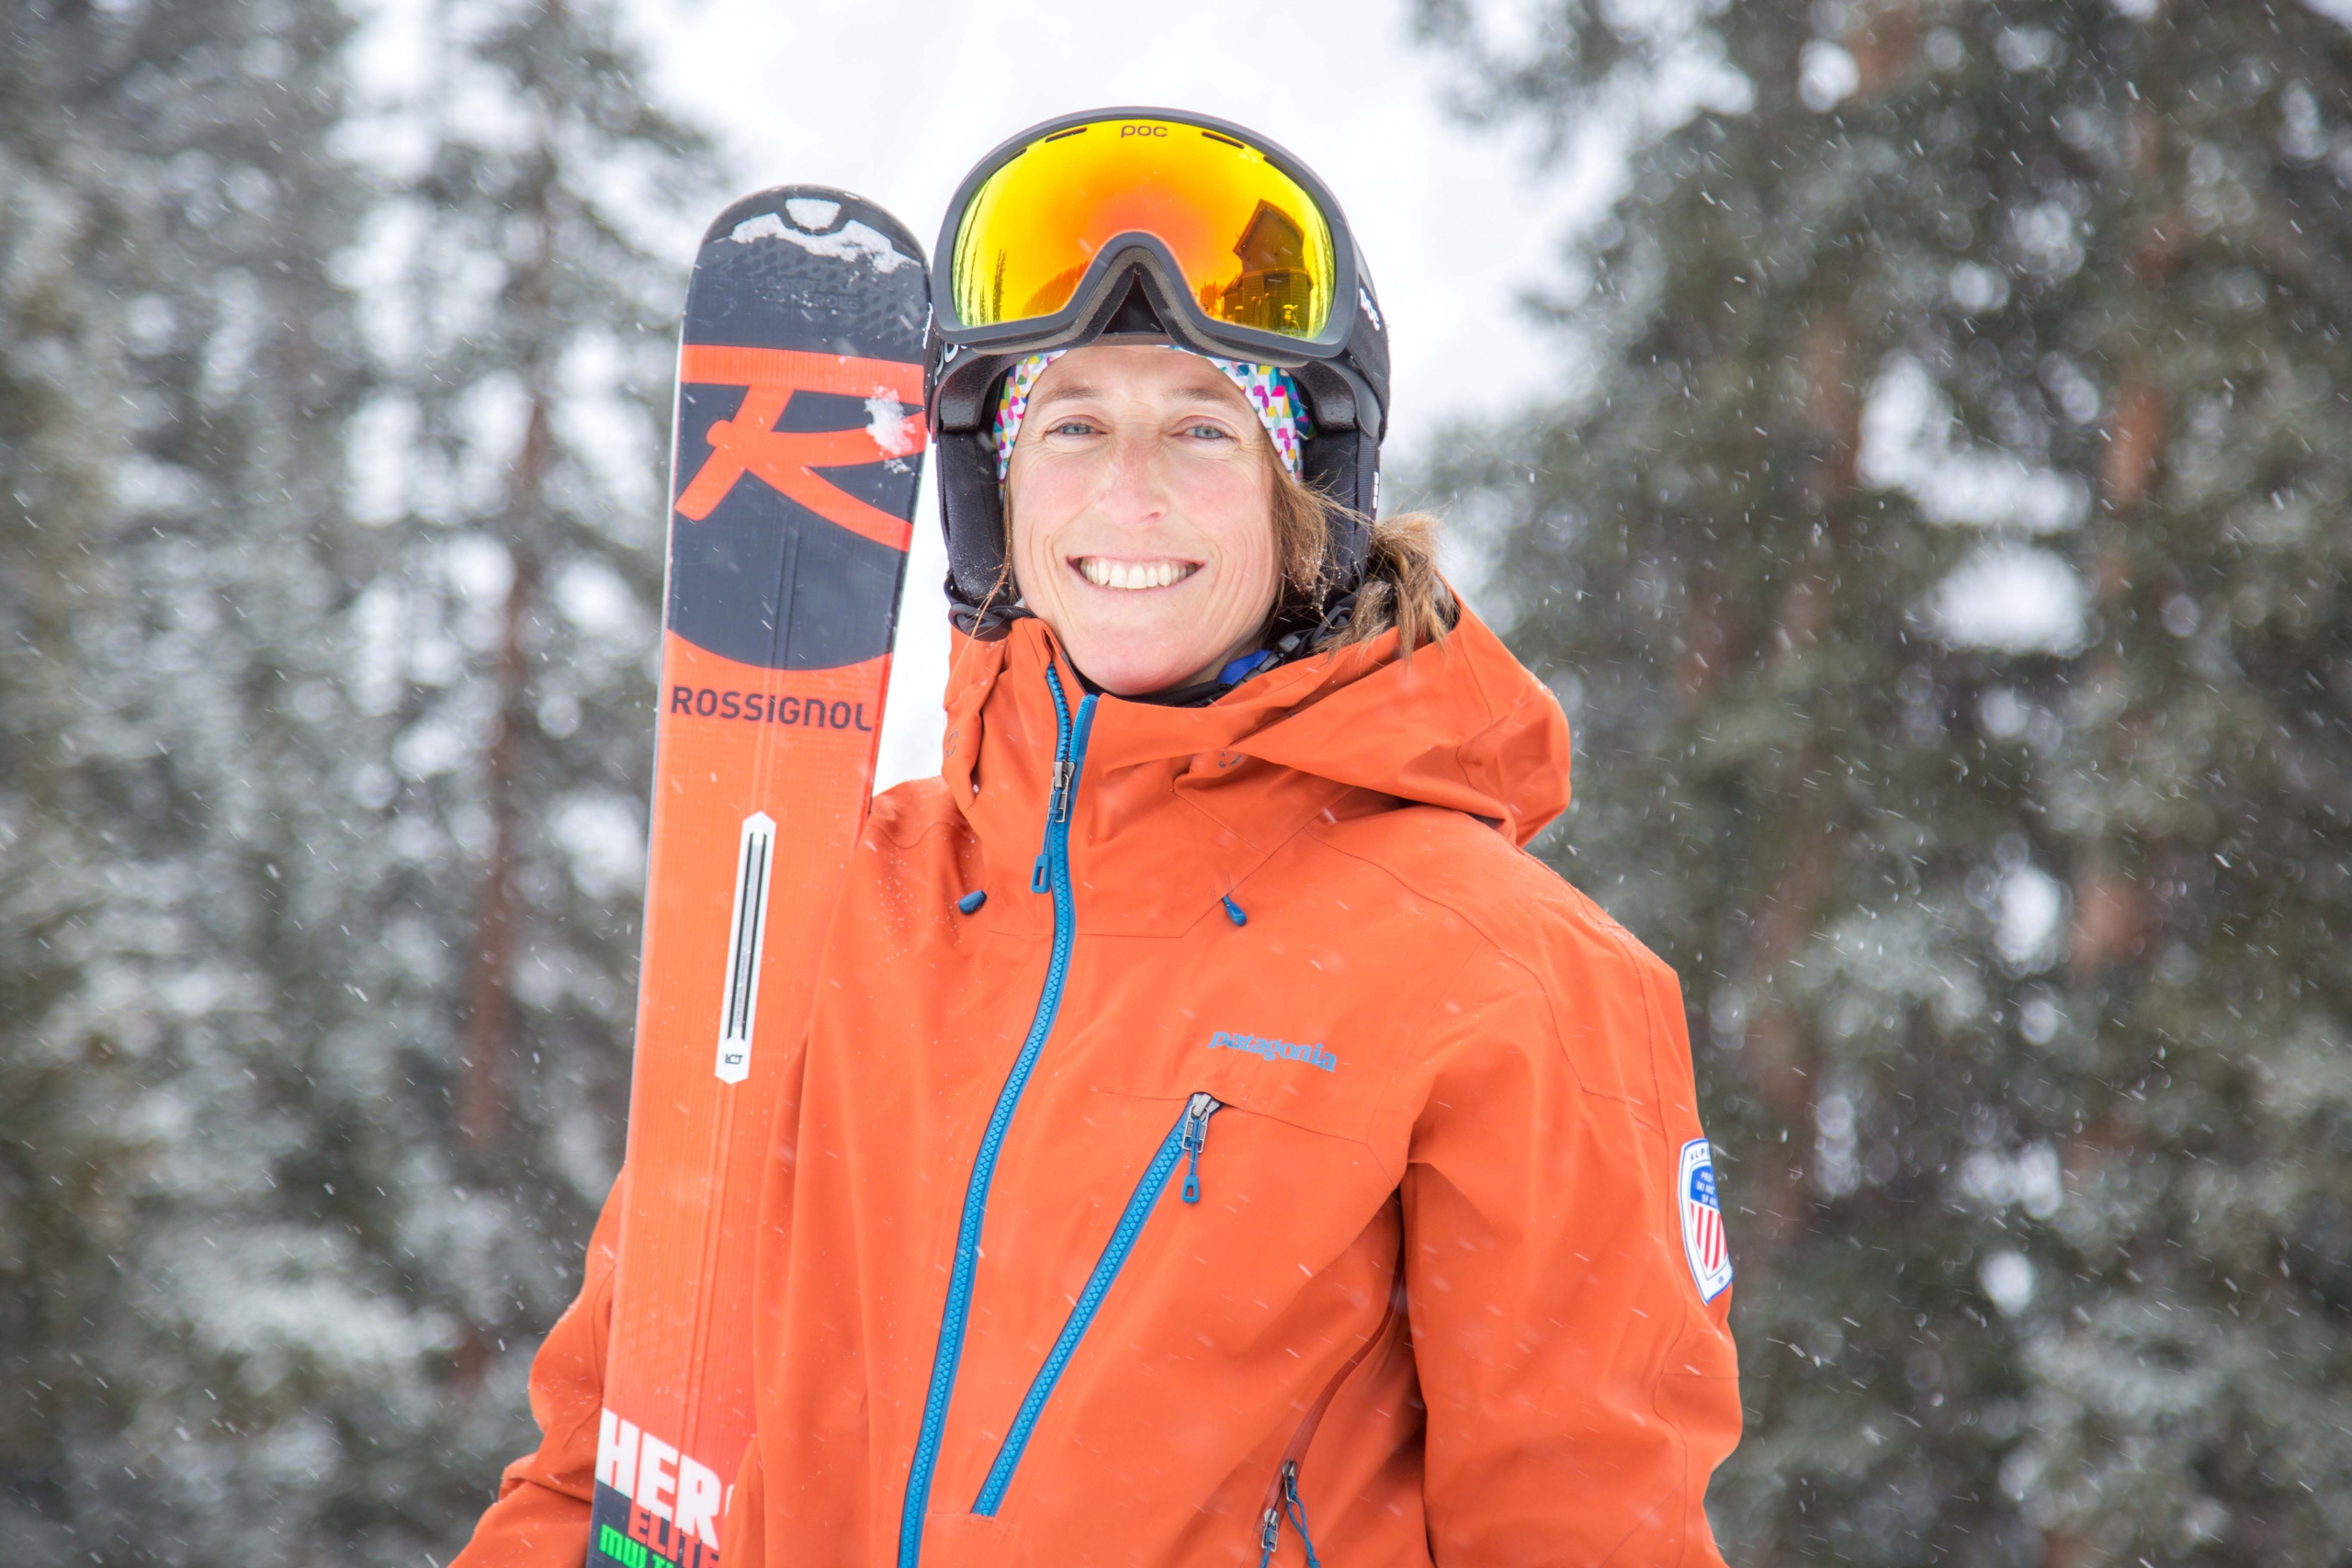 PSIA Alpine Team Member Ann Schorling